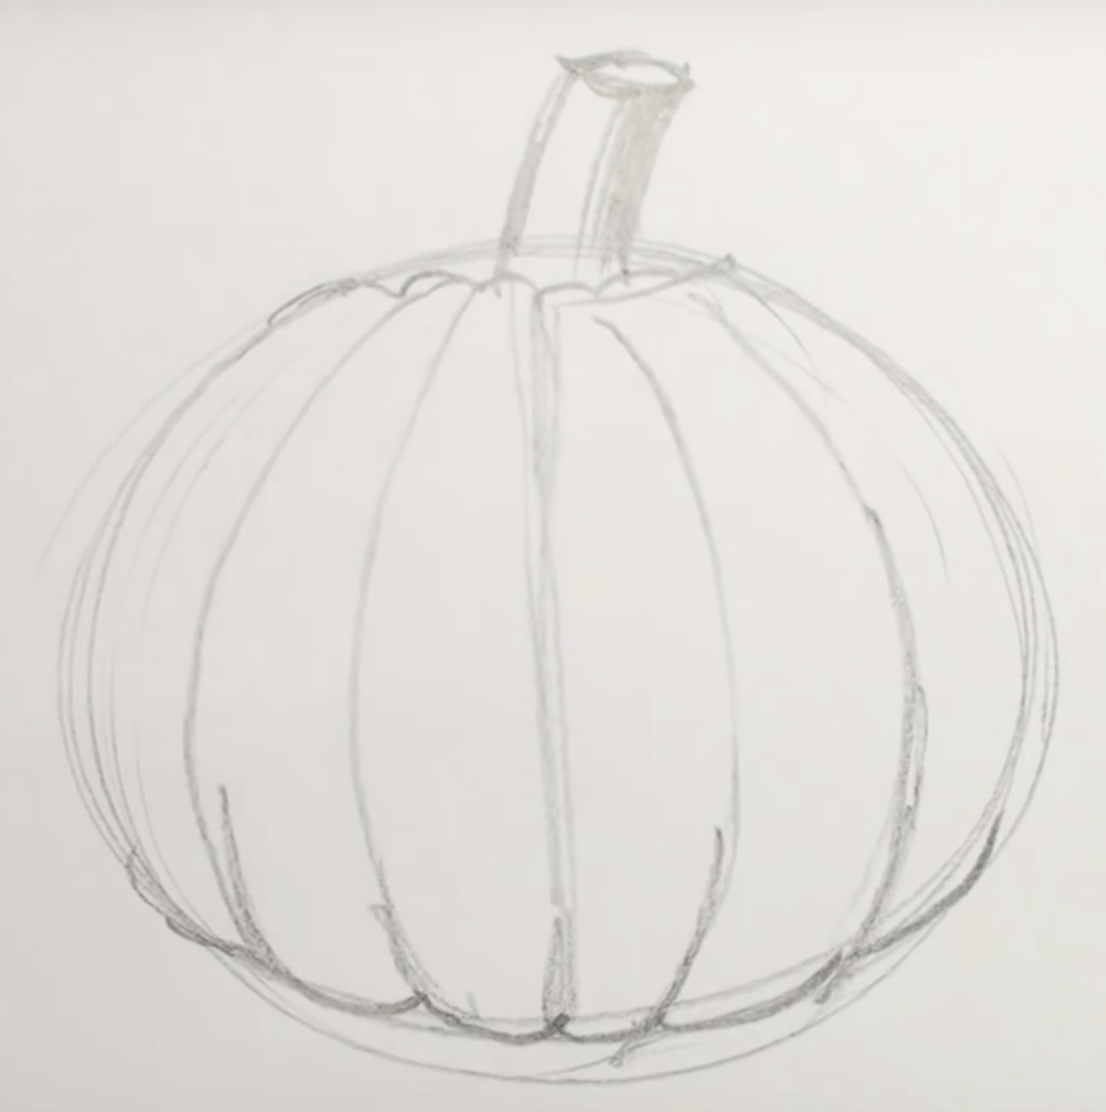 Halloween Drawings Are Scary In Stages How To Draw A Halloween Pumpkin In Pencil In Stages